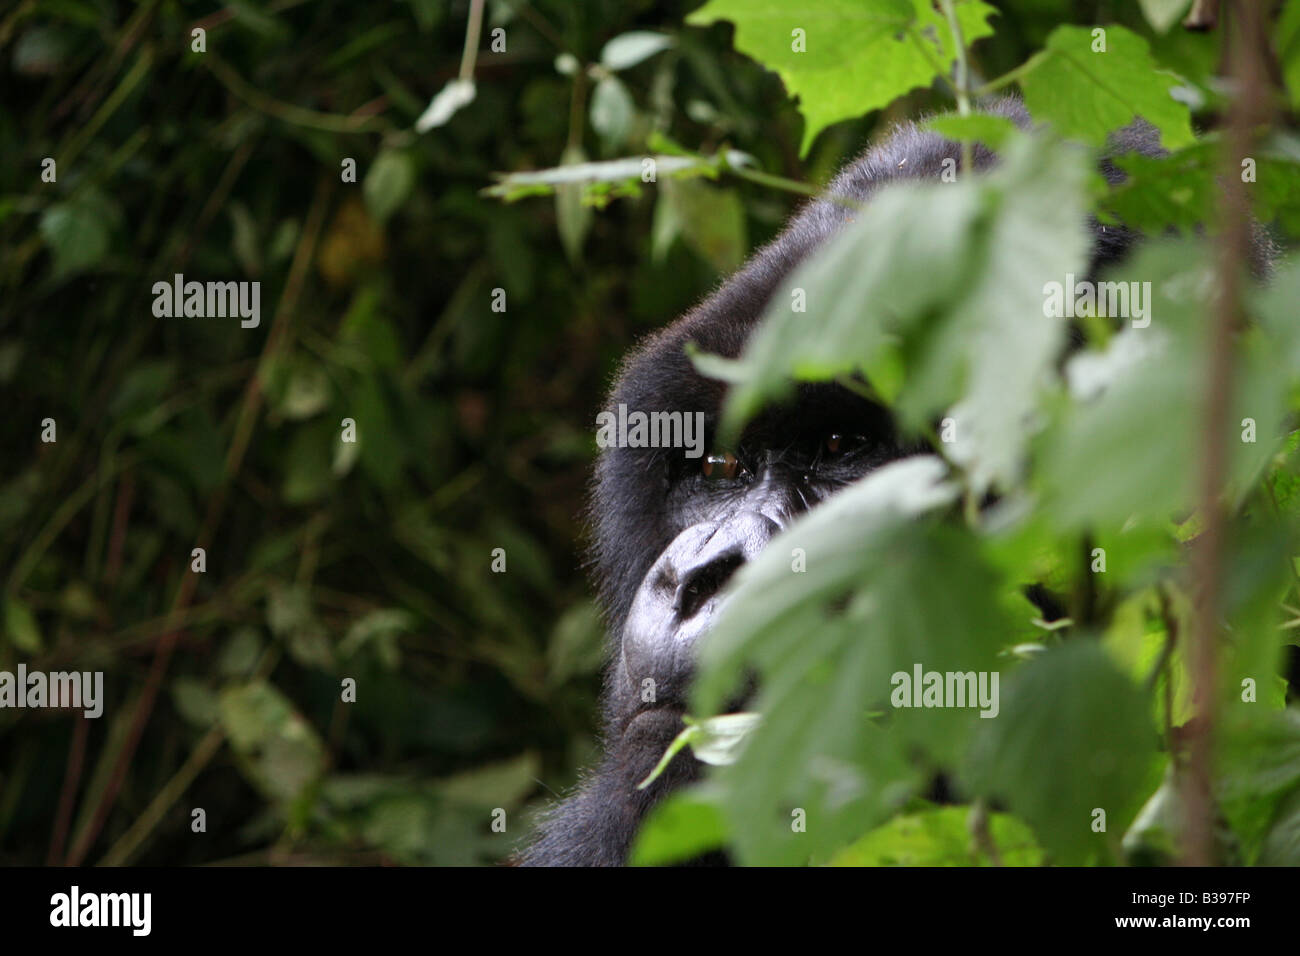 Mountain gorilla of the Amahoro Group in Volcanoes National Park, Rwanda - Stock Image